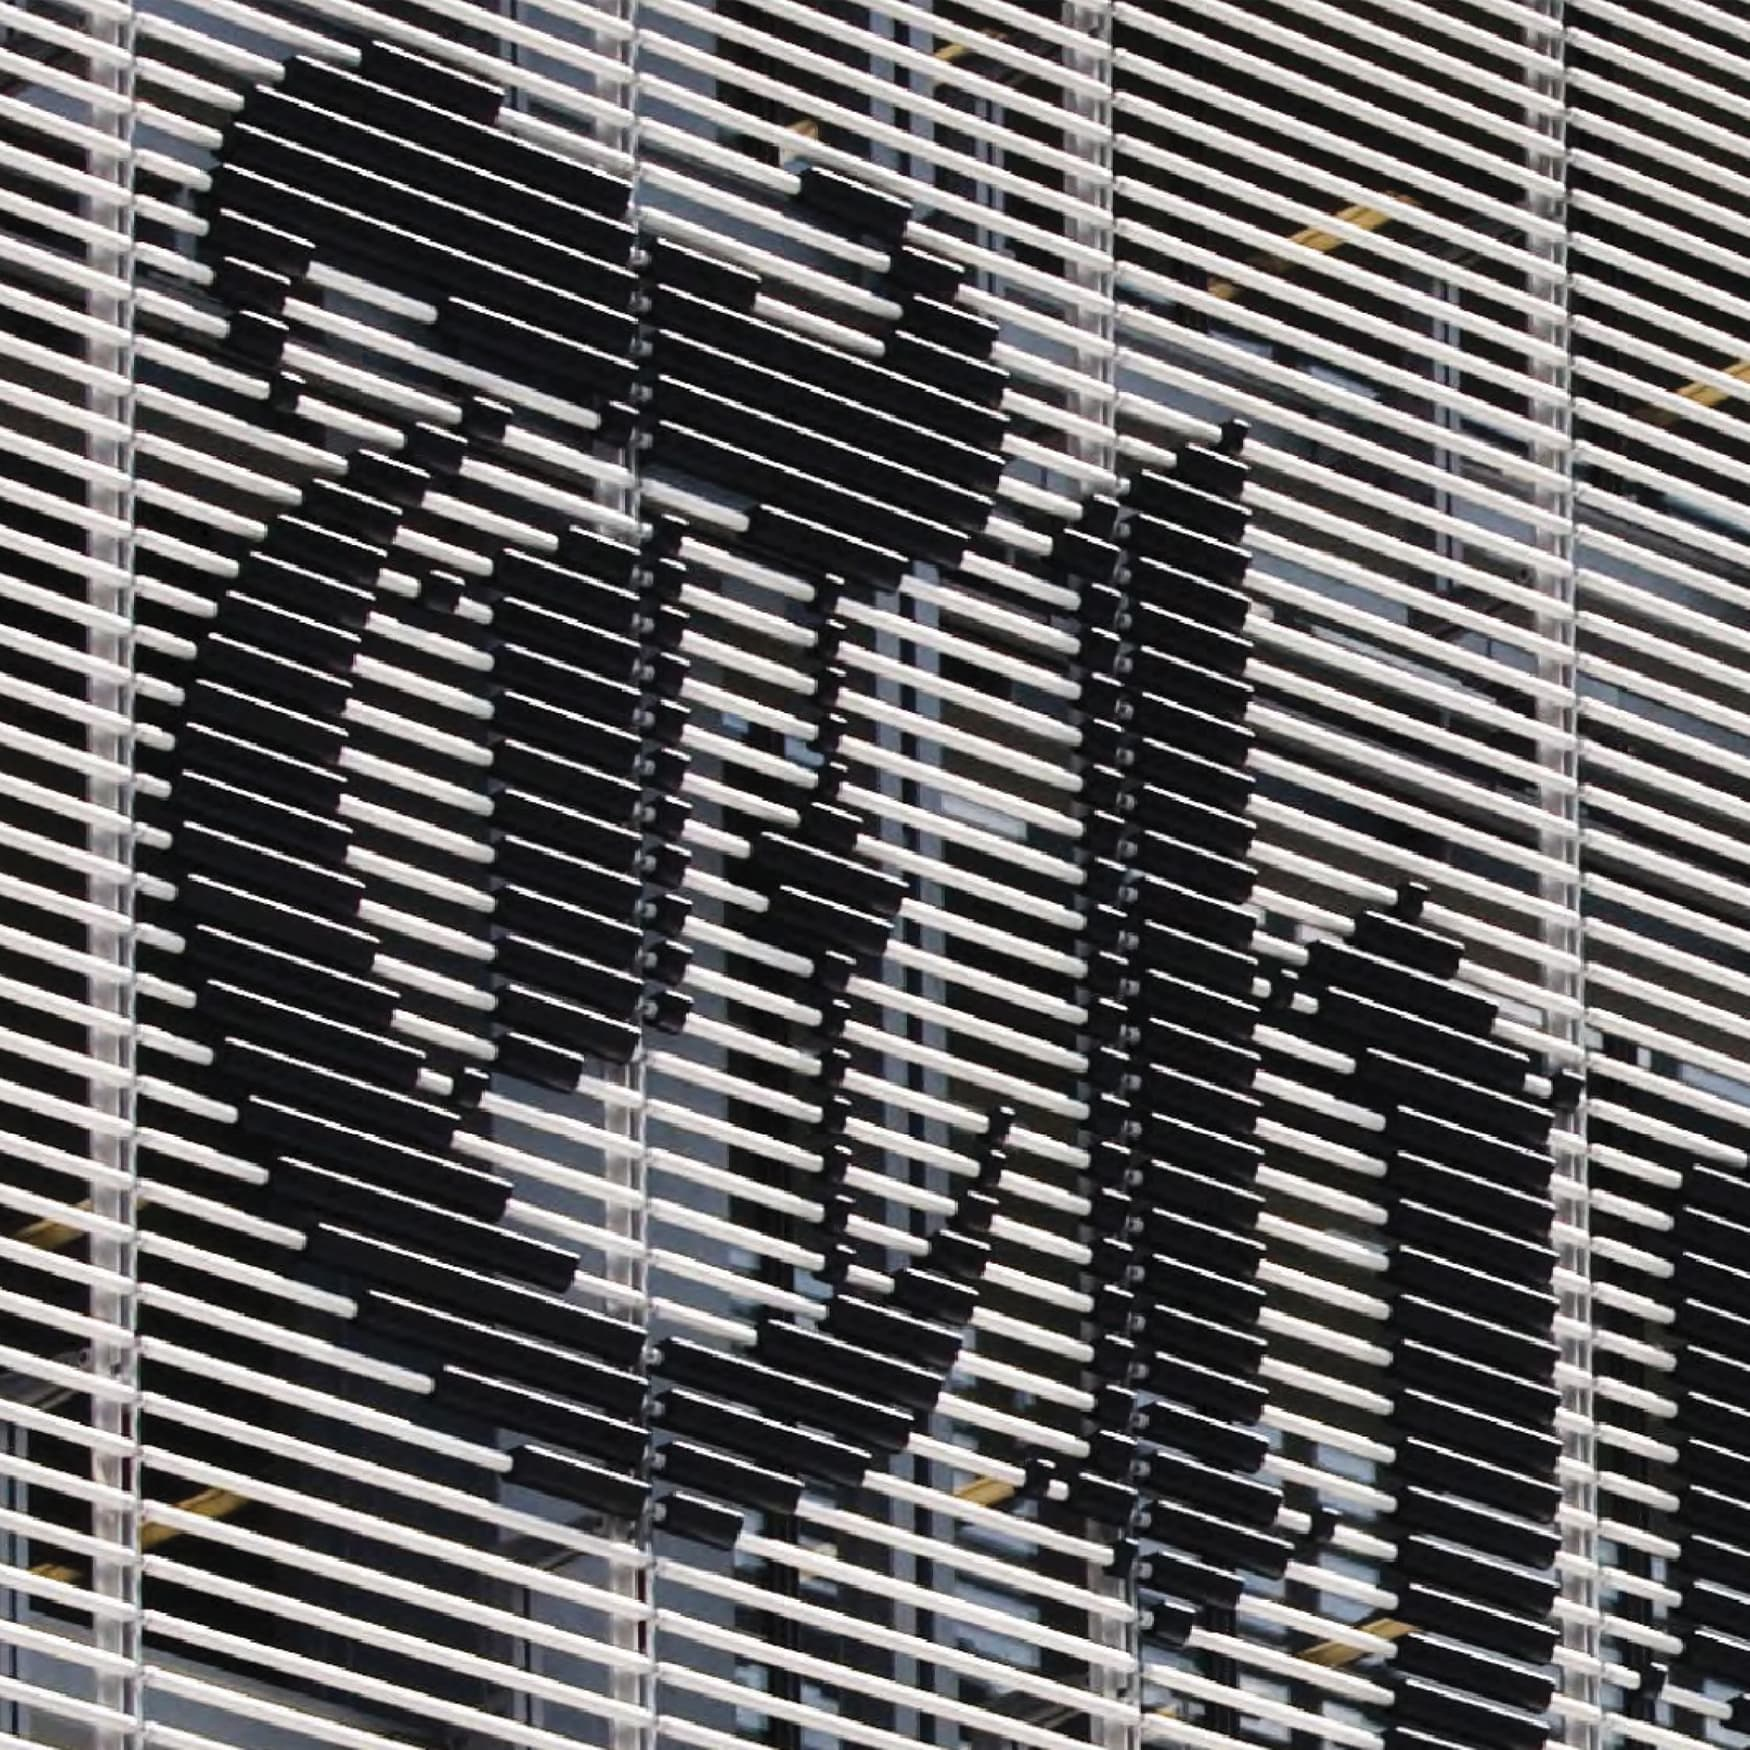 New York Times Building exterior facade signage integrated with the architectural louvers.